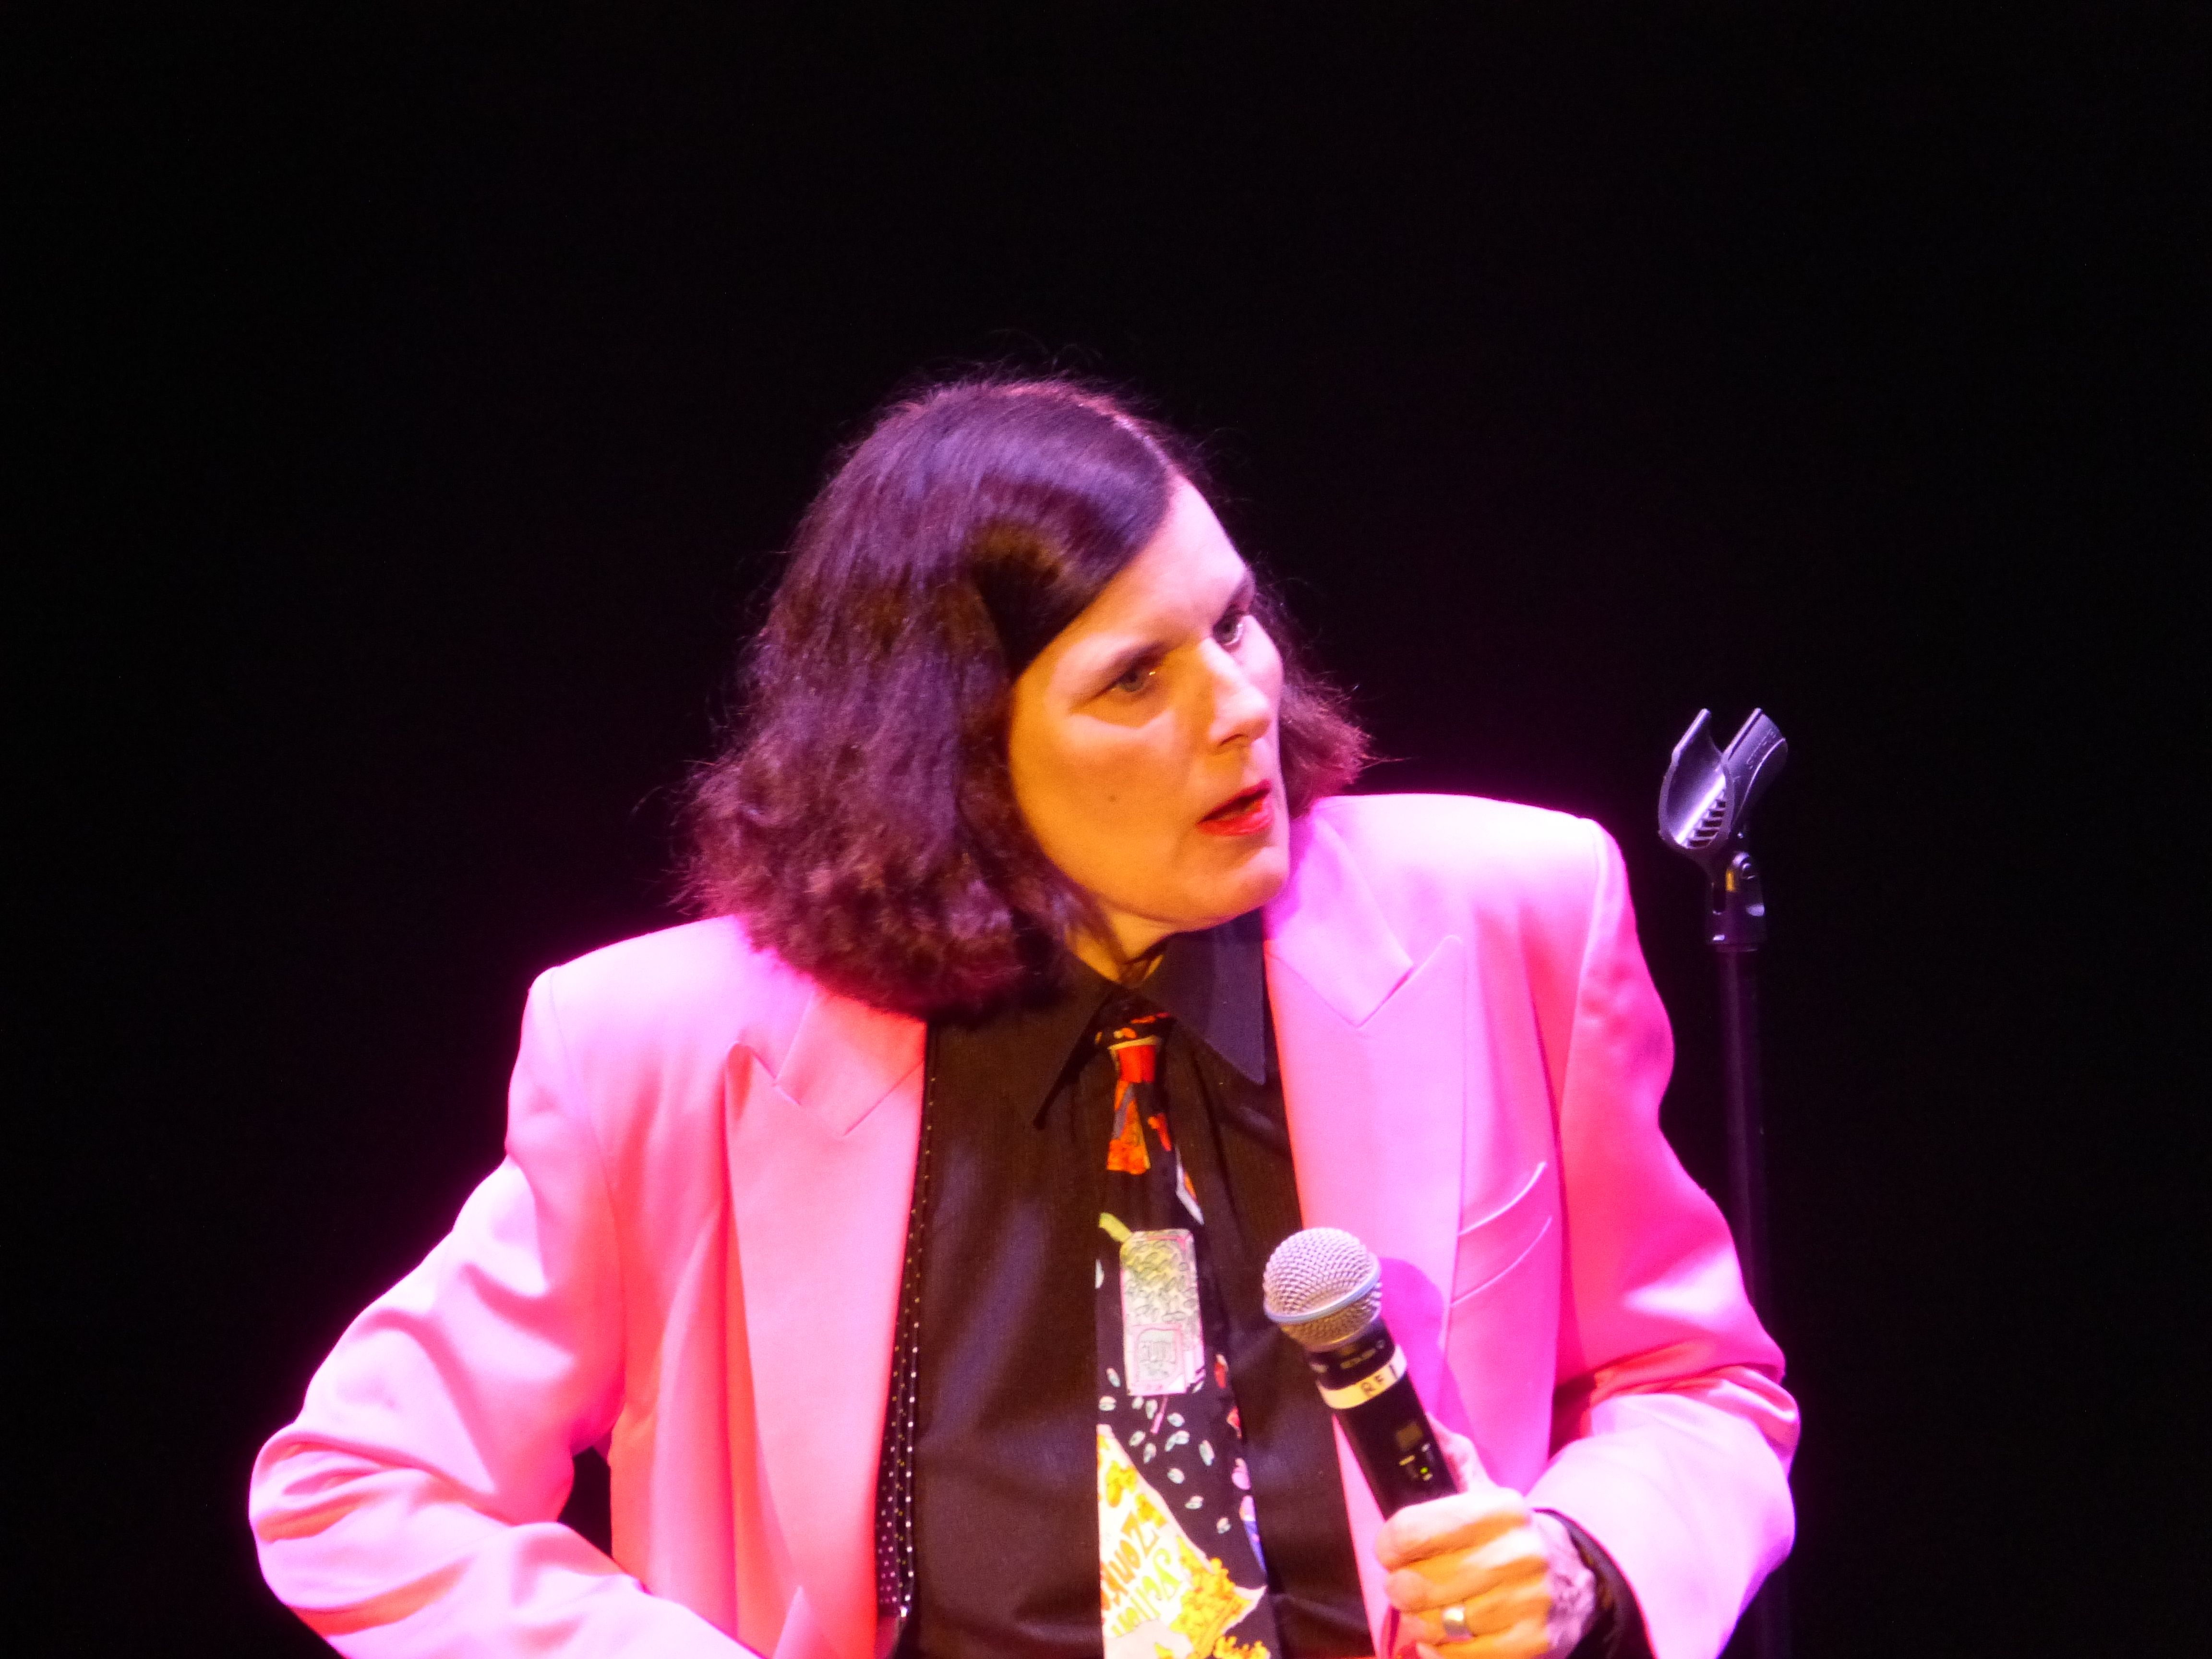 Comedy from #PaulaPoundstone on 7/16 #CapeCod #MelodyTent #NPR #Waitwaitdonttellme #Comedy